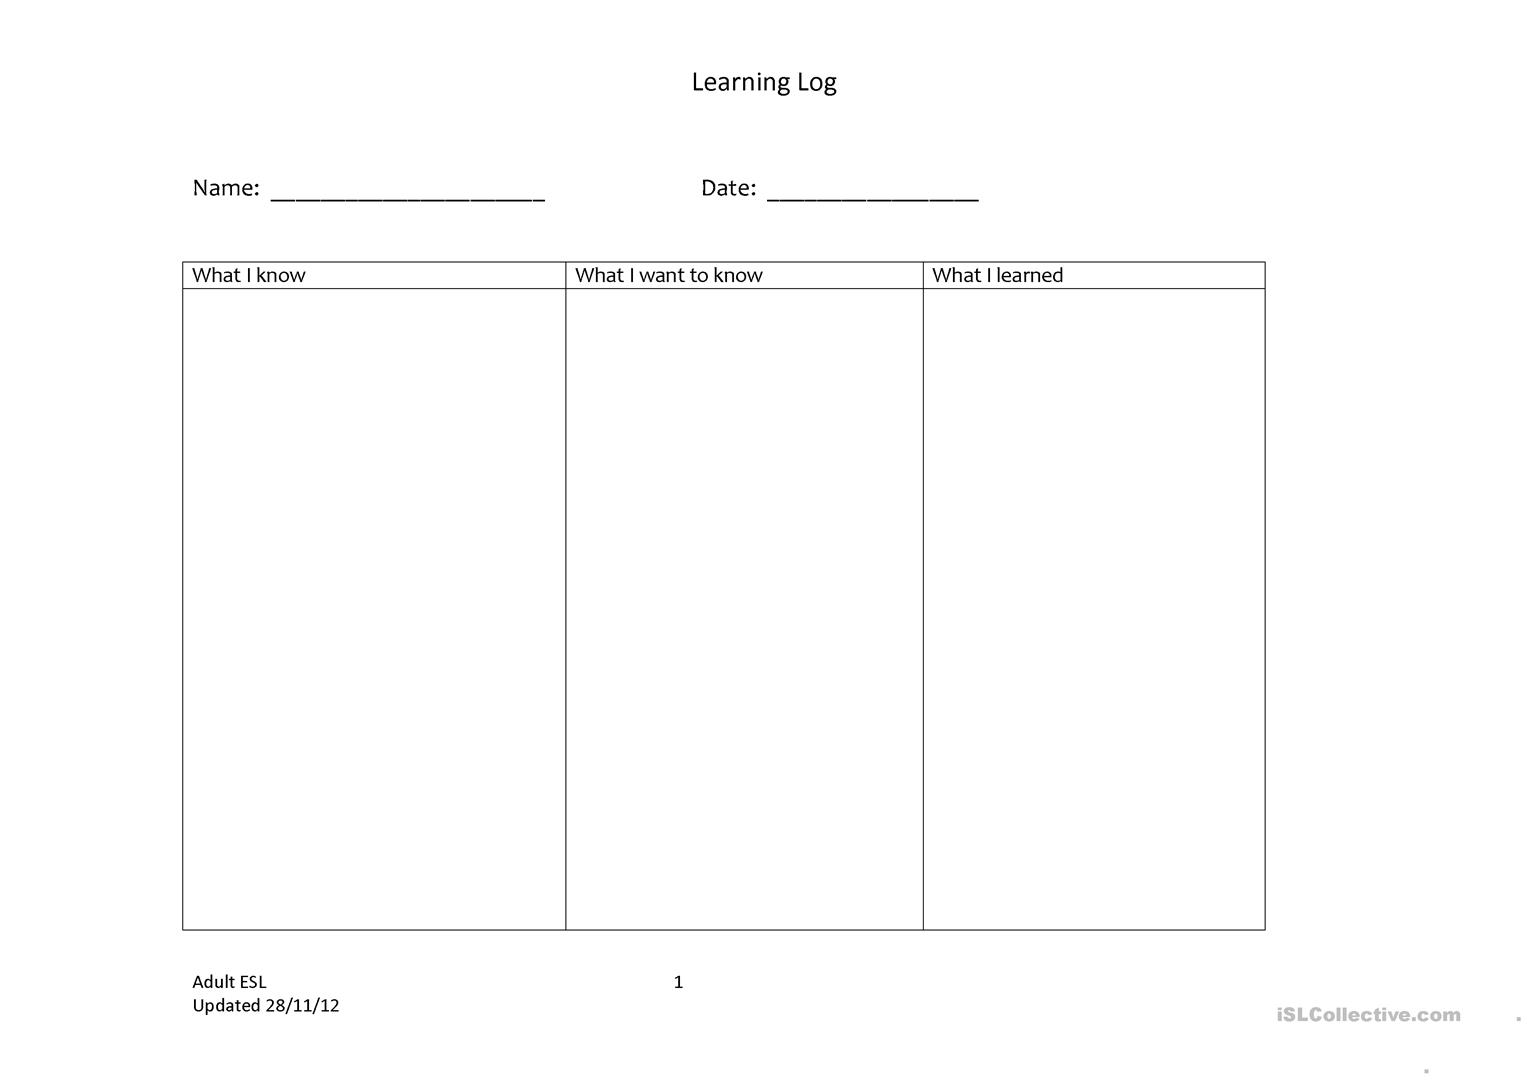 Learning Log Worksheet